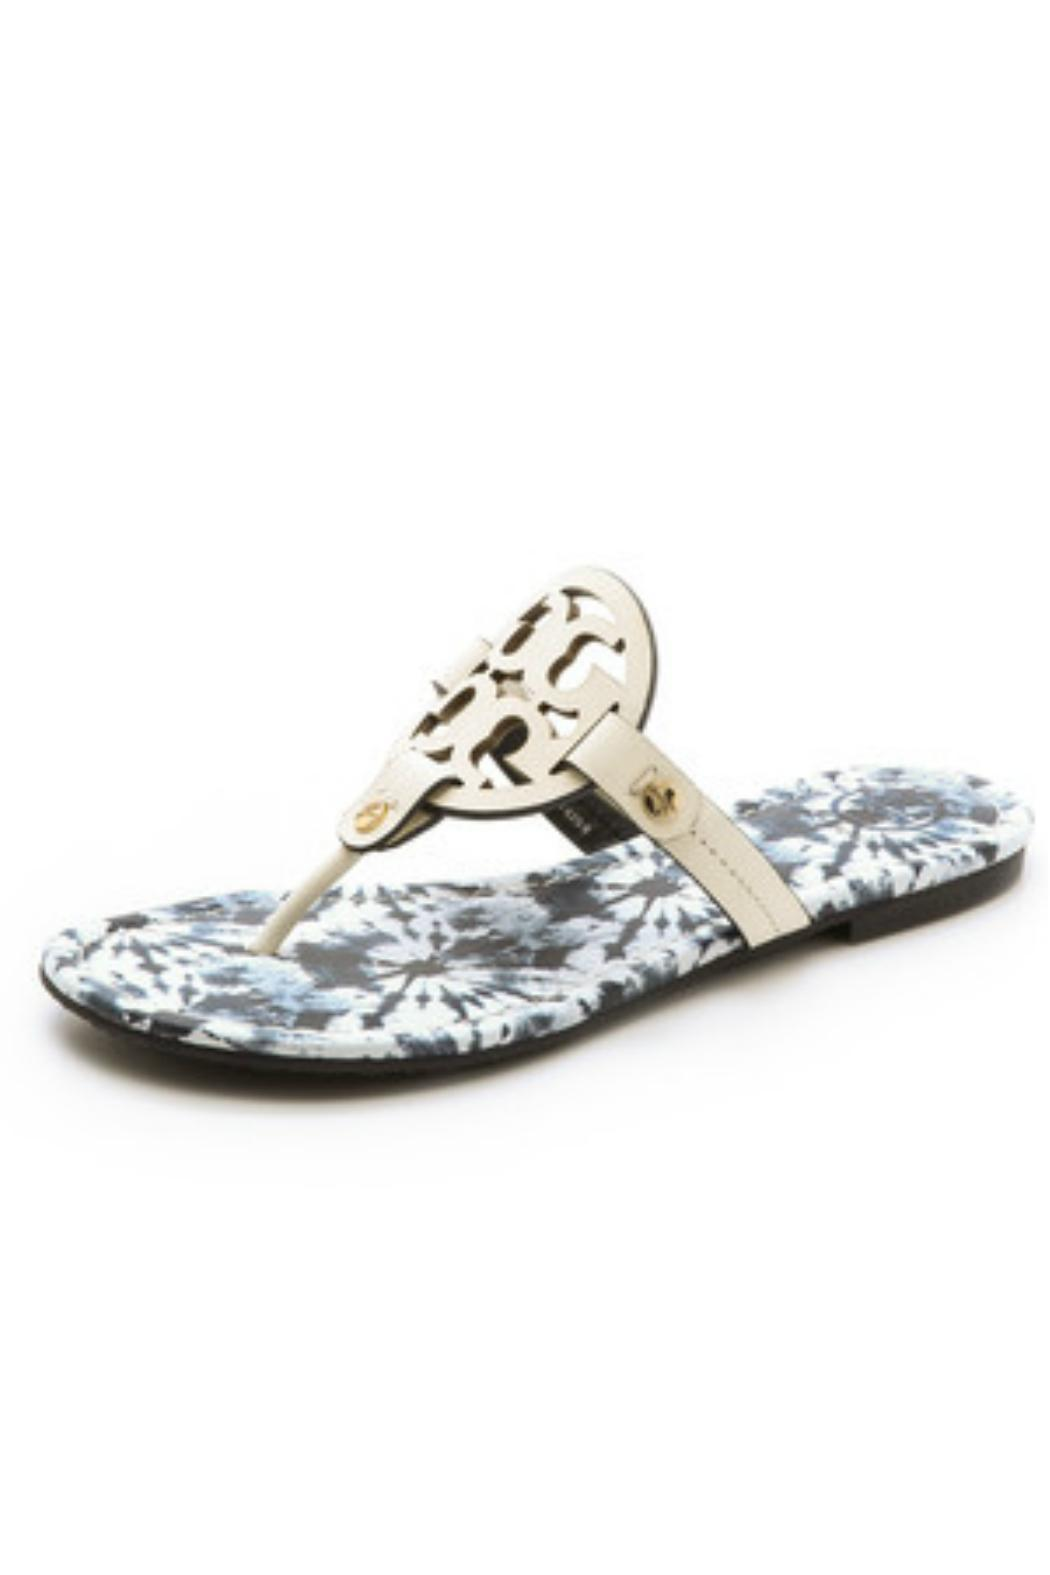 51d5d79adbccb8 Tory Burch Toryburch Miller Sandal from New Hampshire by Stiletto ...